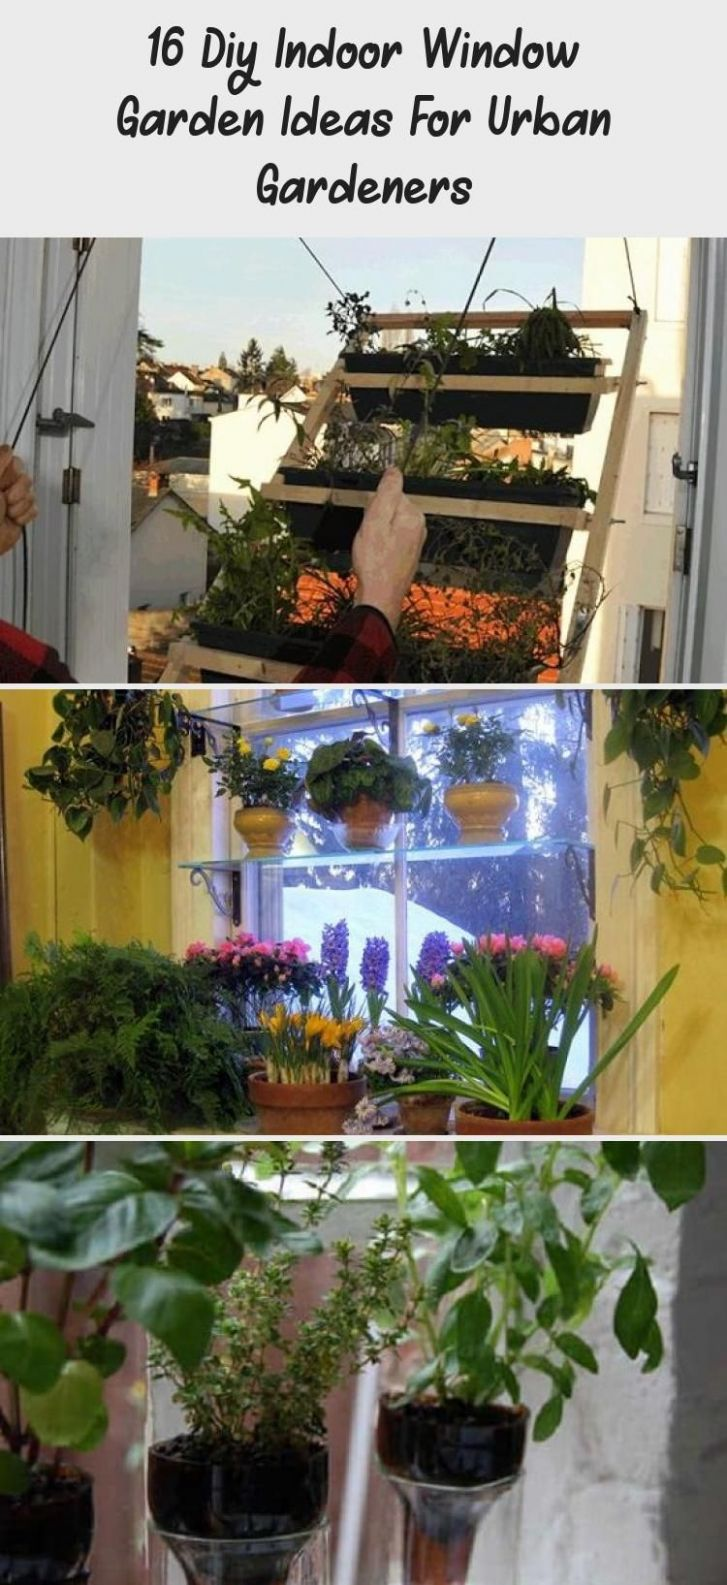 12 Diy Indoor Window Garden Ideas For Urban Gardeners in 12 ..